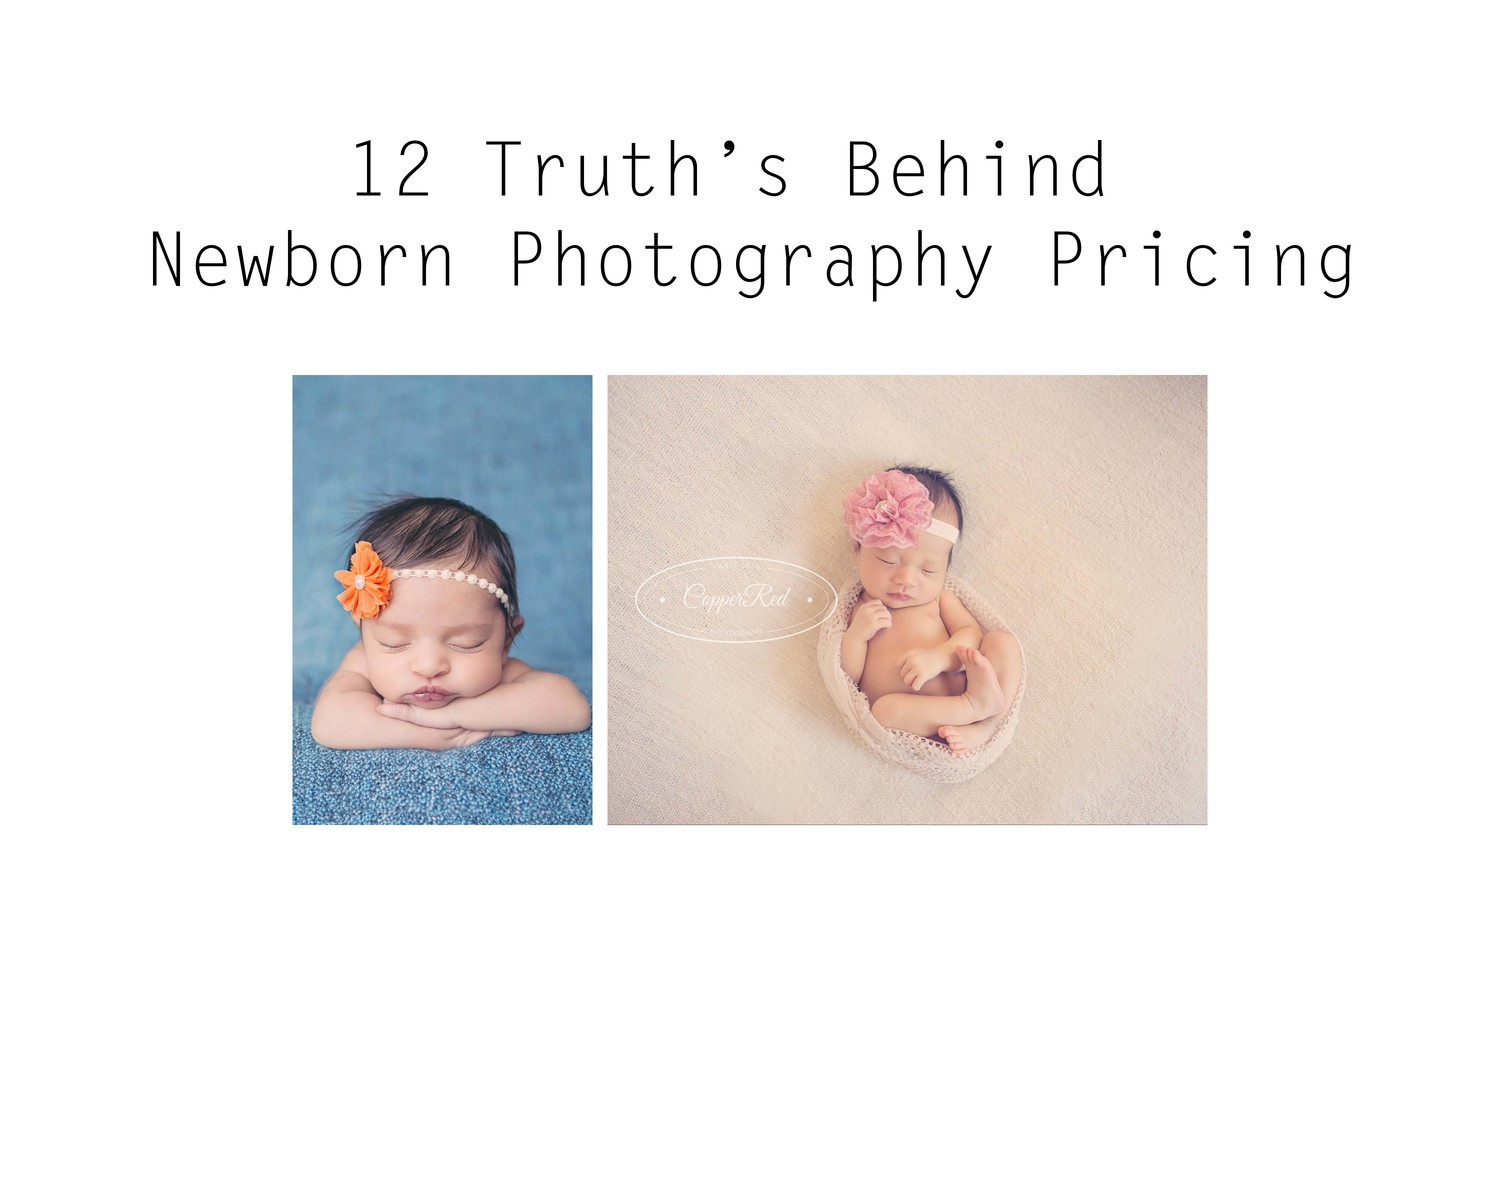 12 truths behind newborn photography pricing copperred photography